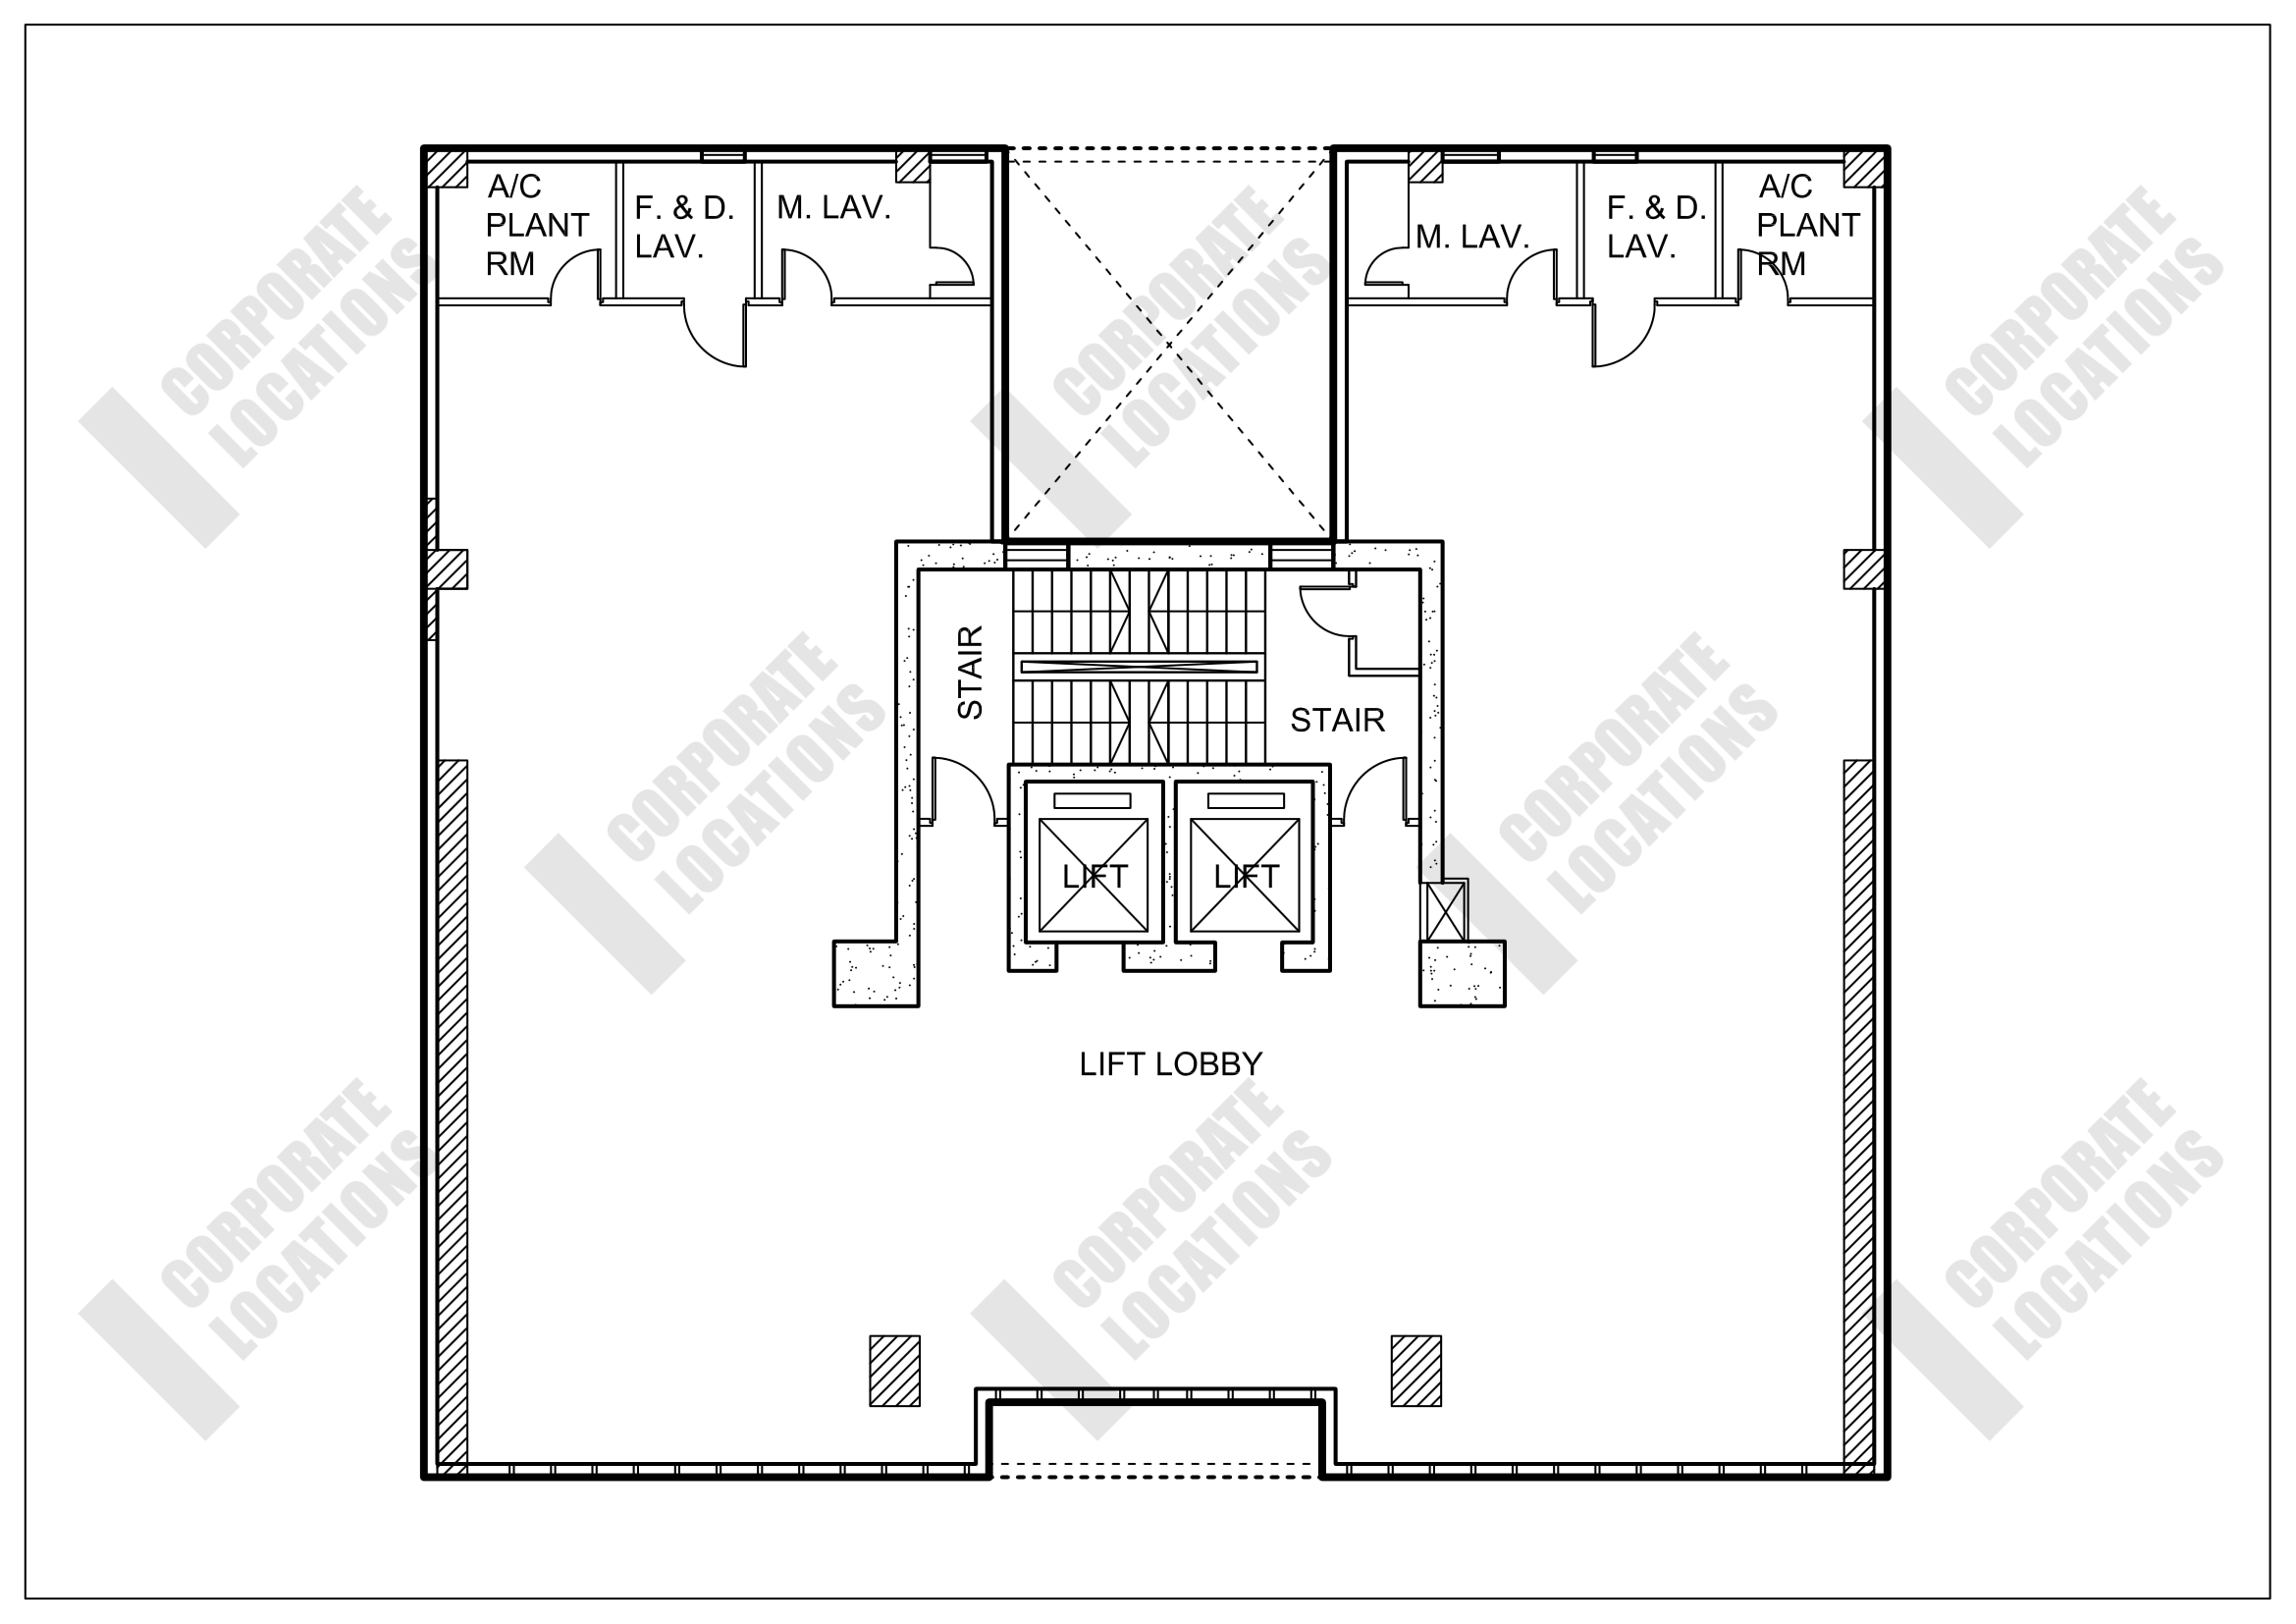 Floorplan CKK Commercial Centre